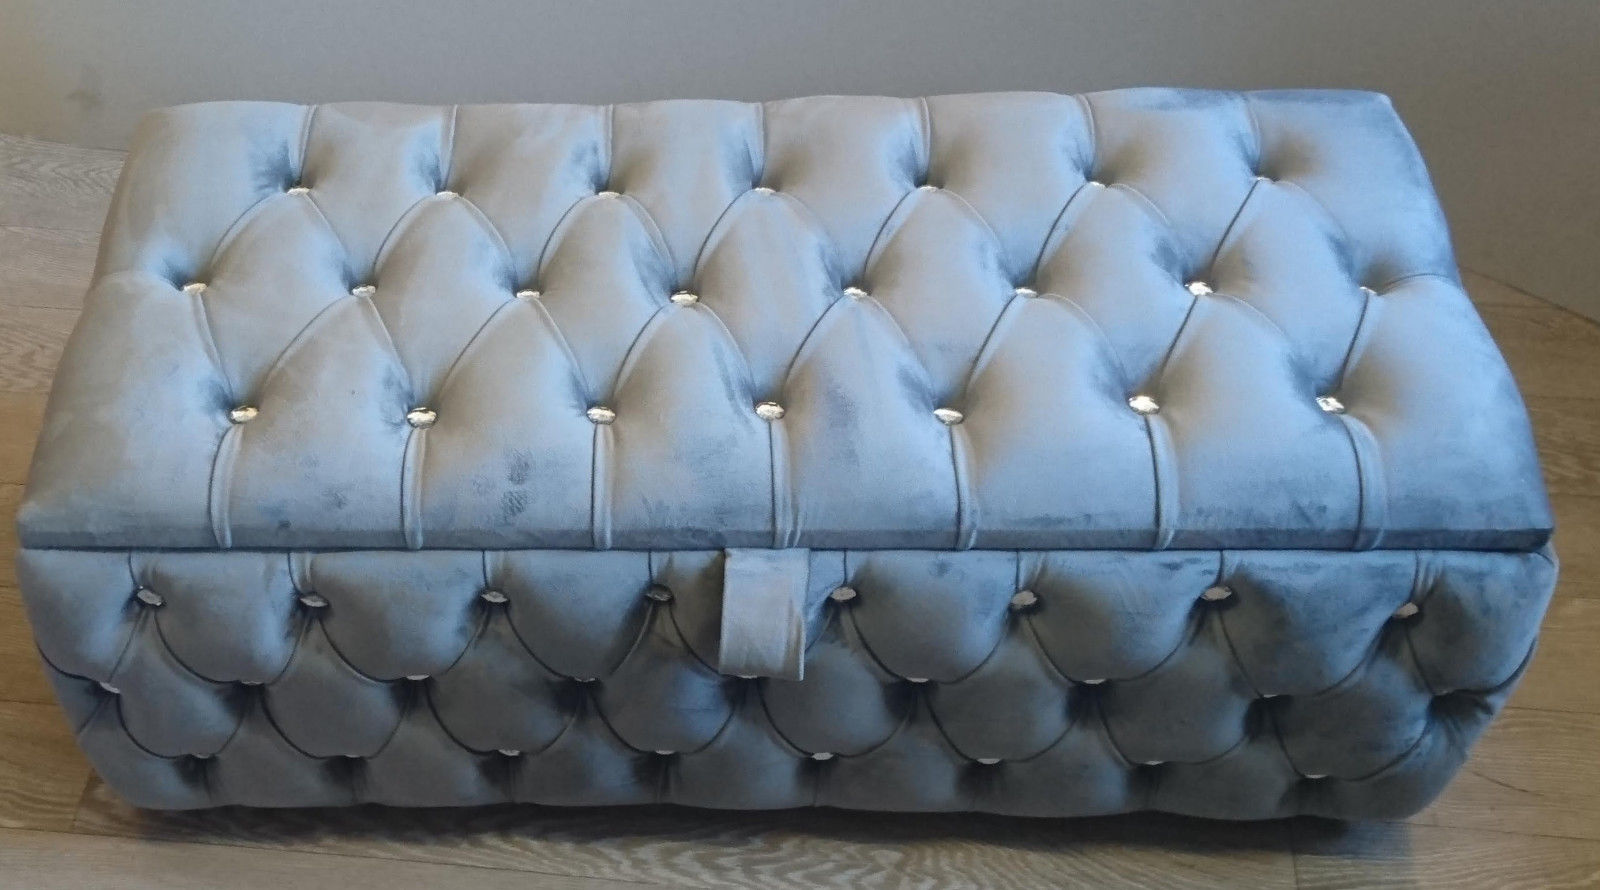 CHESTERFIELD STORAGE OTTOMAN BOX IDEAL FOR TOYS AND BLANKETS